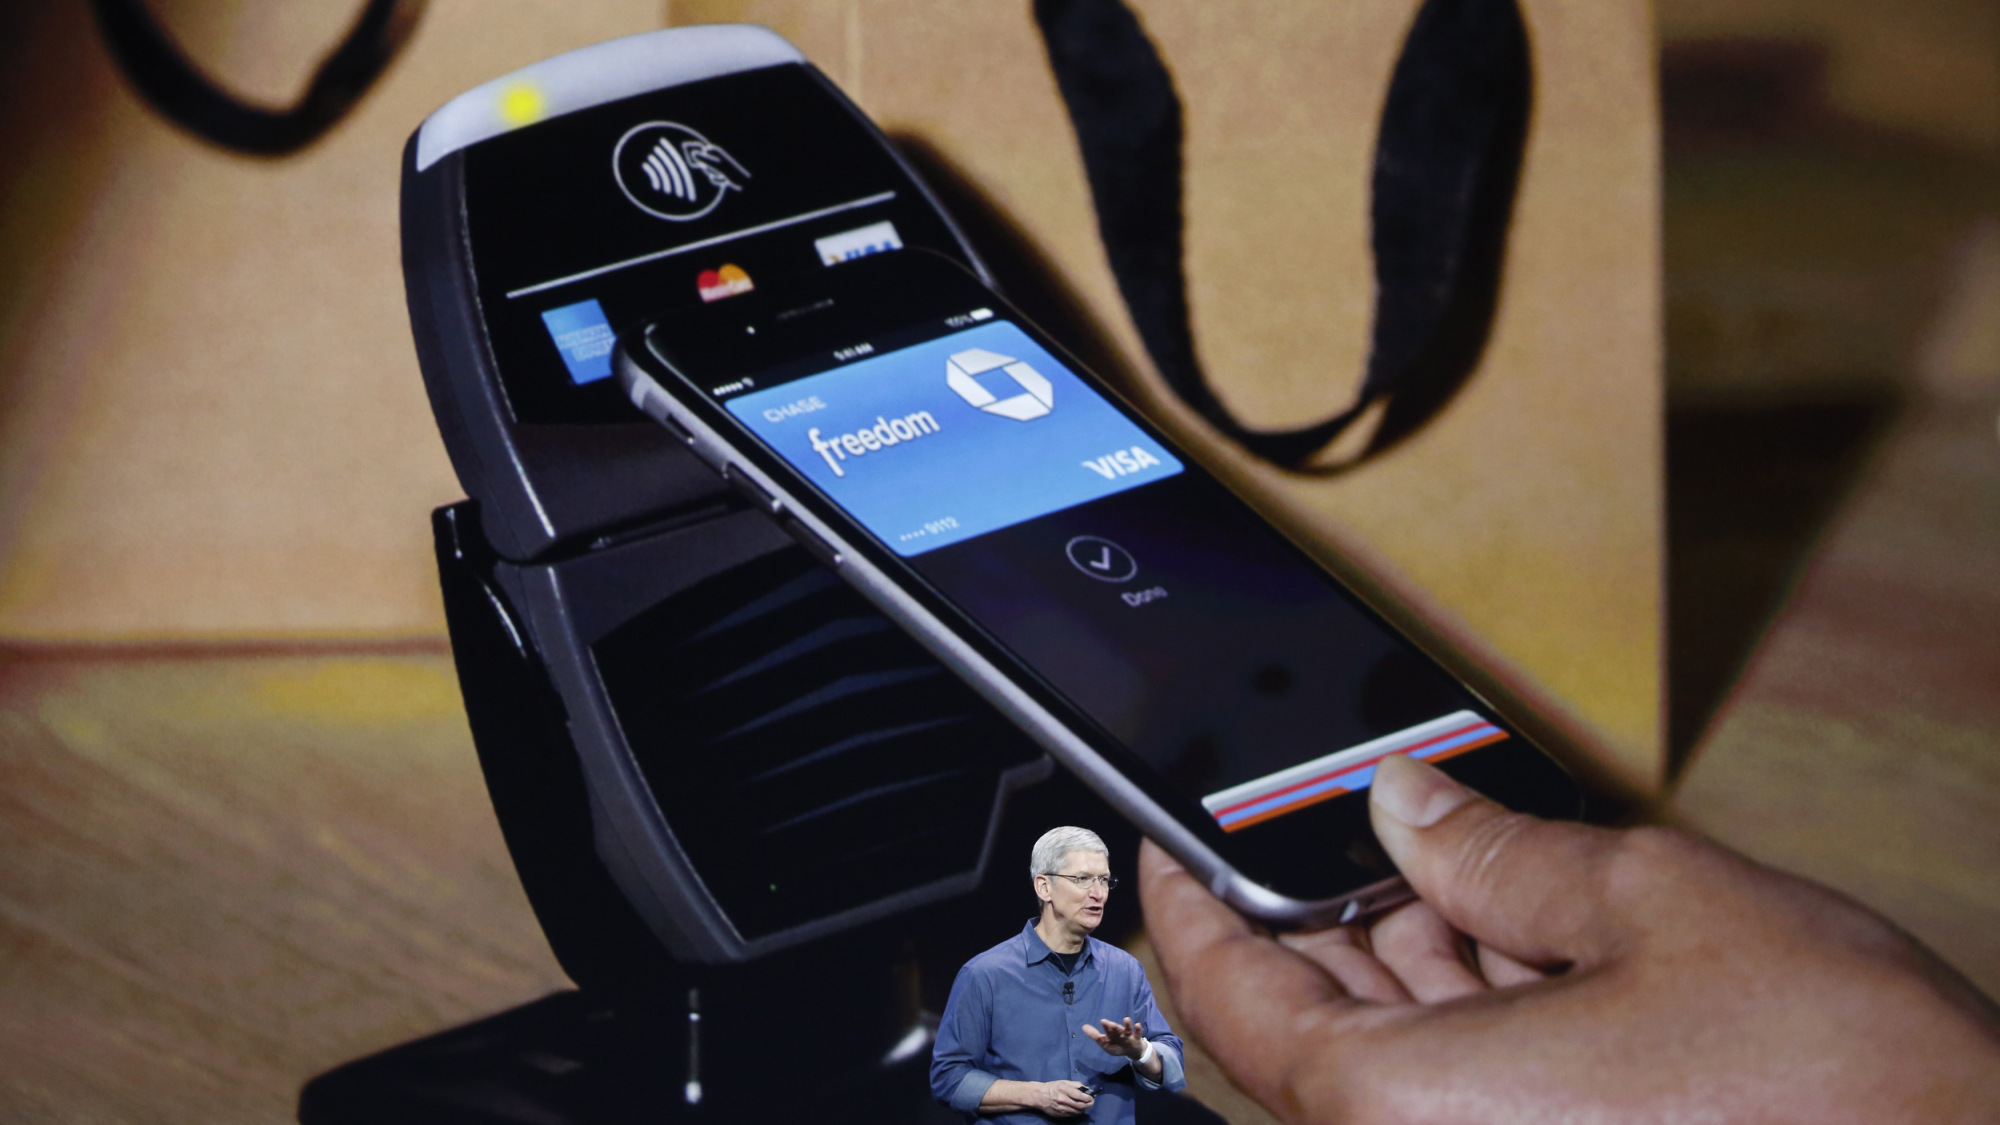 Apple CEO, Tim Cook, announces Apple Pay at WWDC 2015.